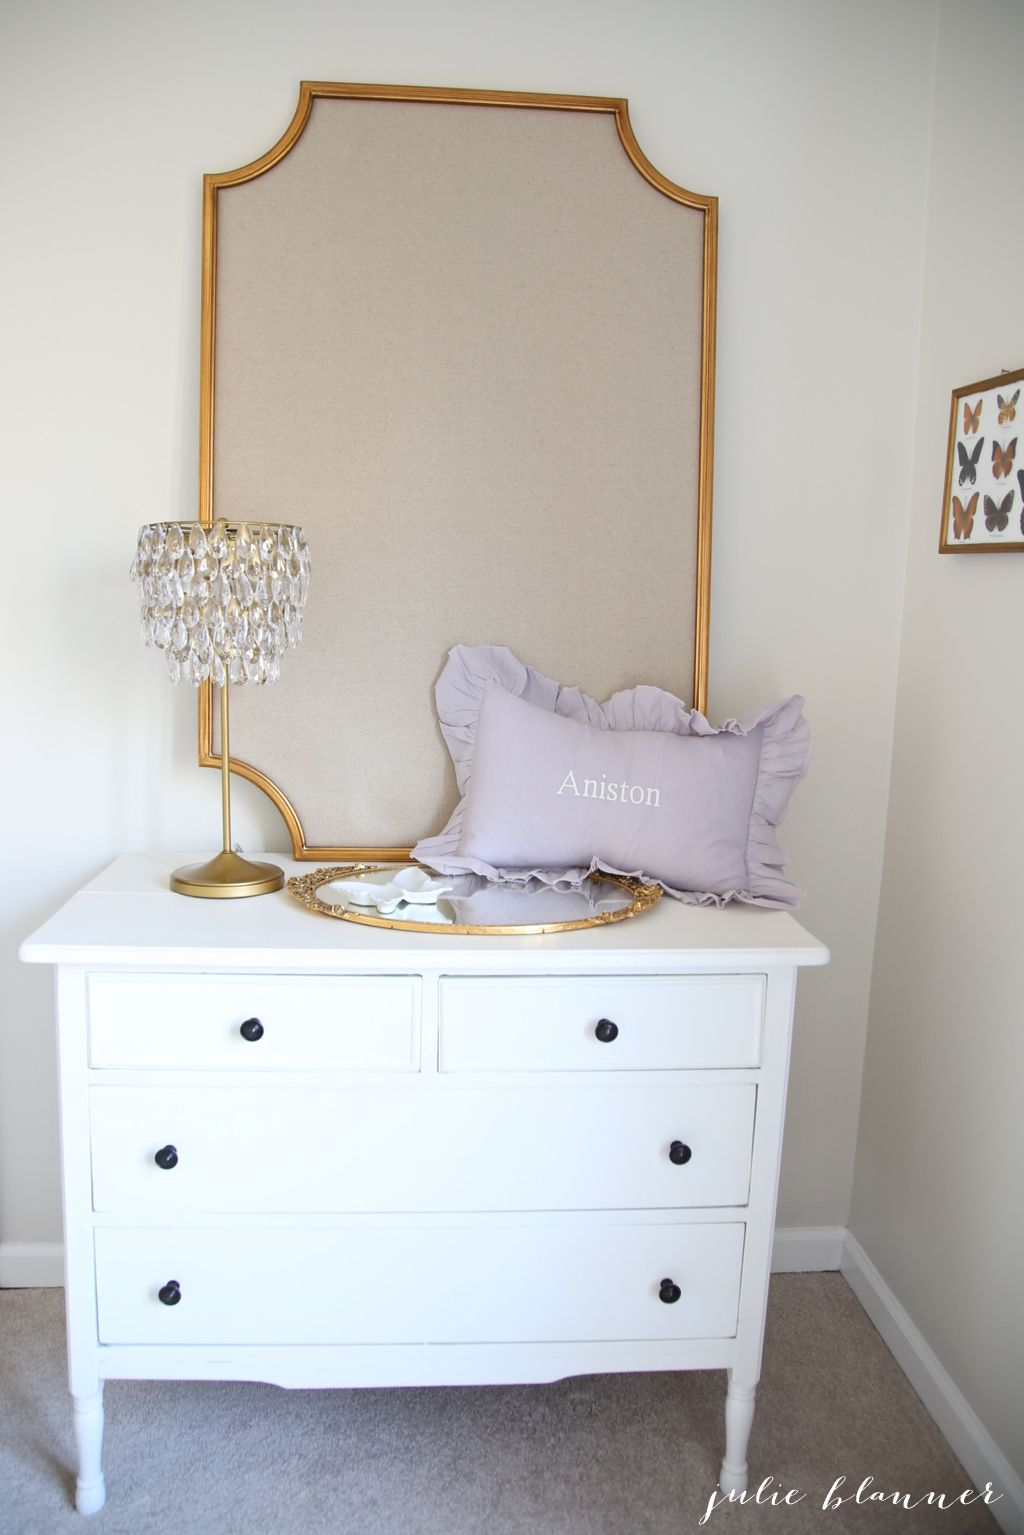 The Decorating Process The Beginnings Of A Bedroom Home Decor Cheap Home Decor Decor